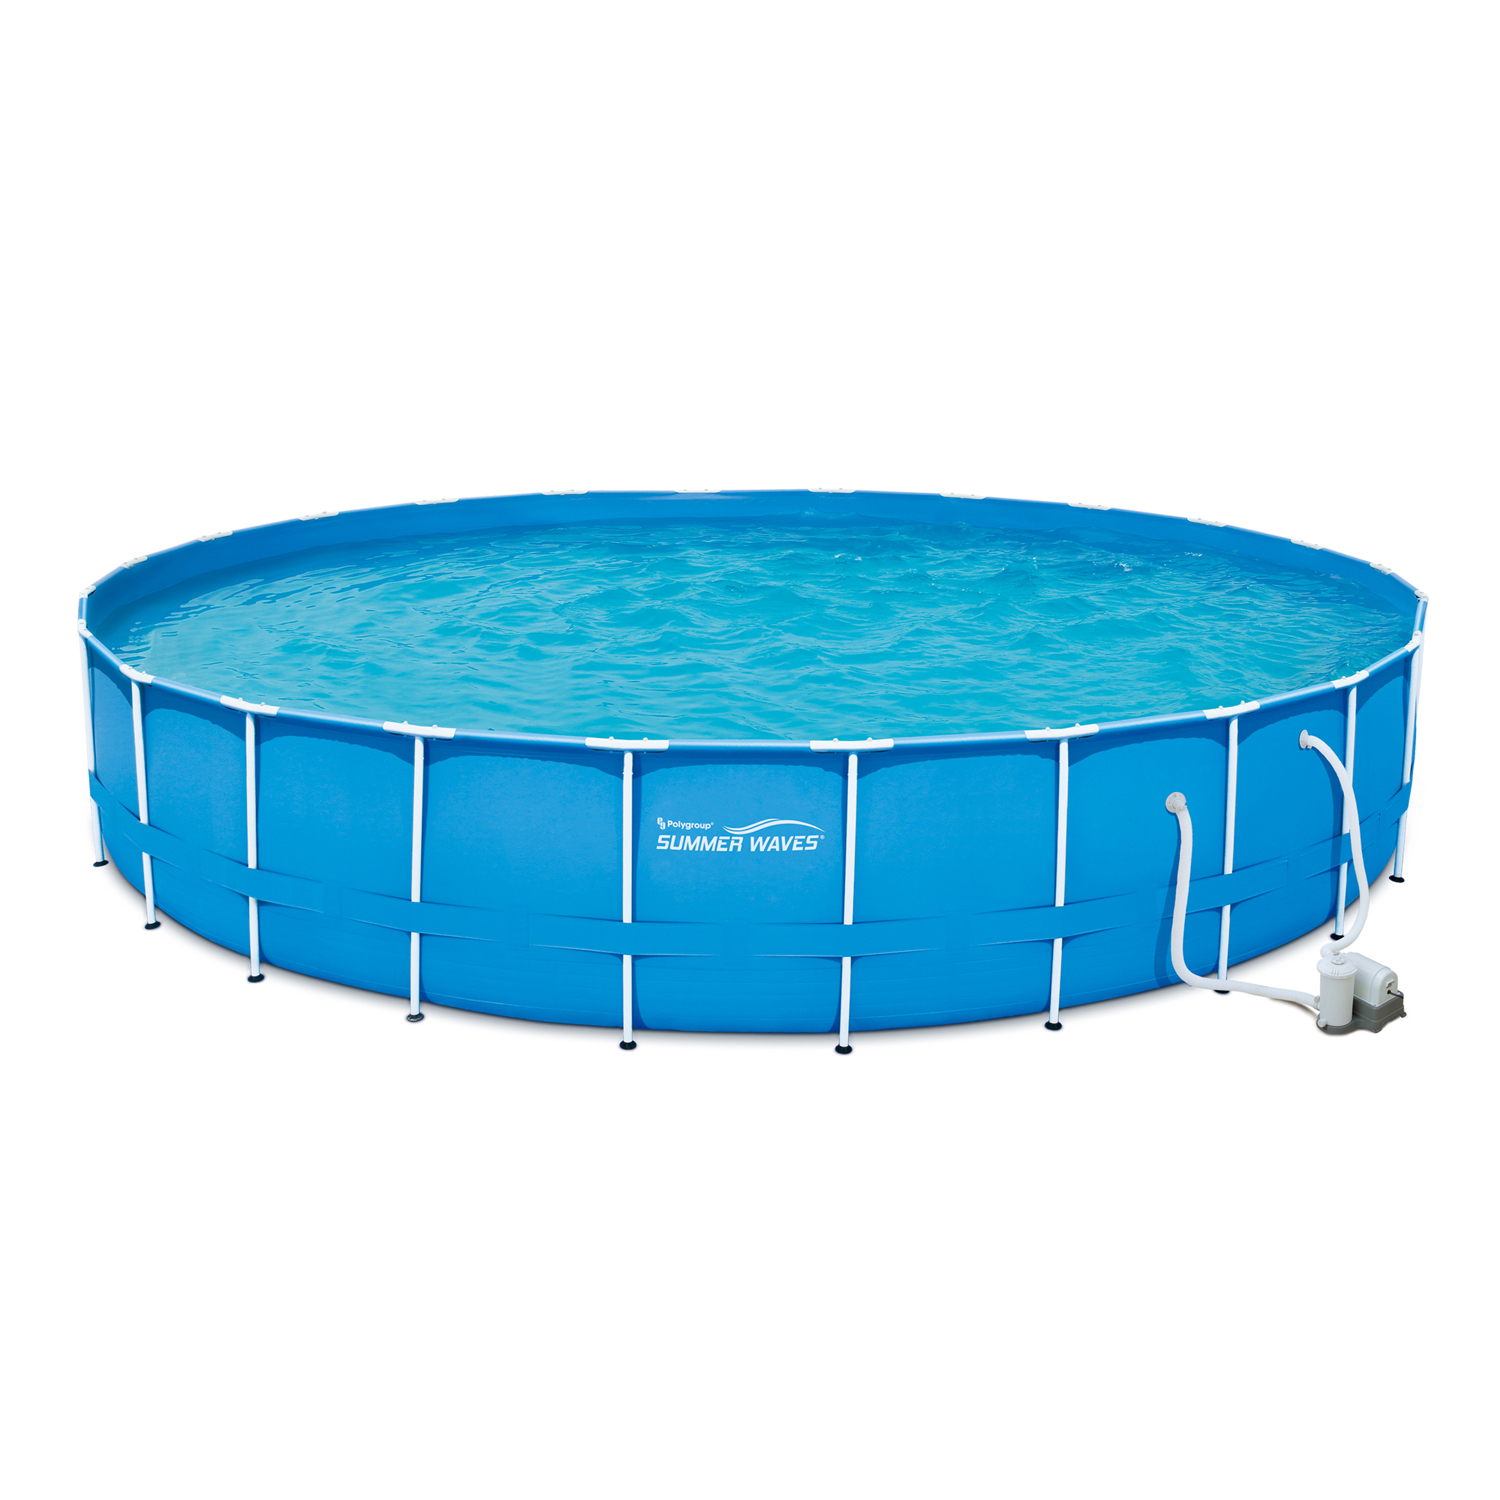 "Summer Waves 24' x 52"" Metal Frame Above Ground Swimming Pool with Filter Pump and Deluxe Accessory Set"